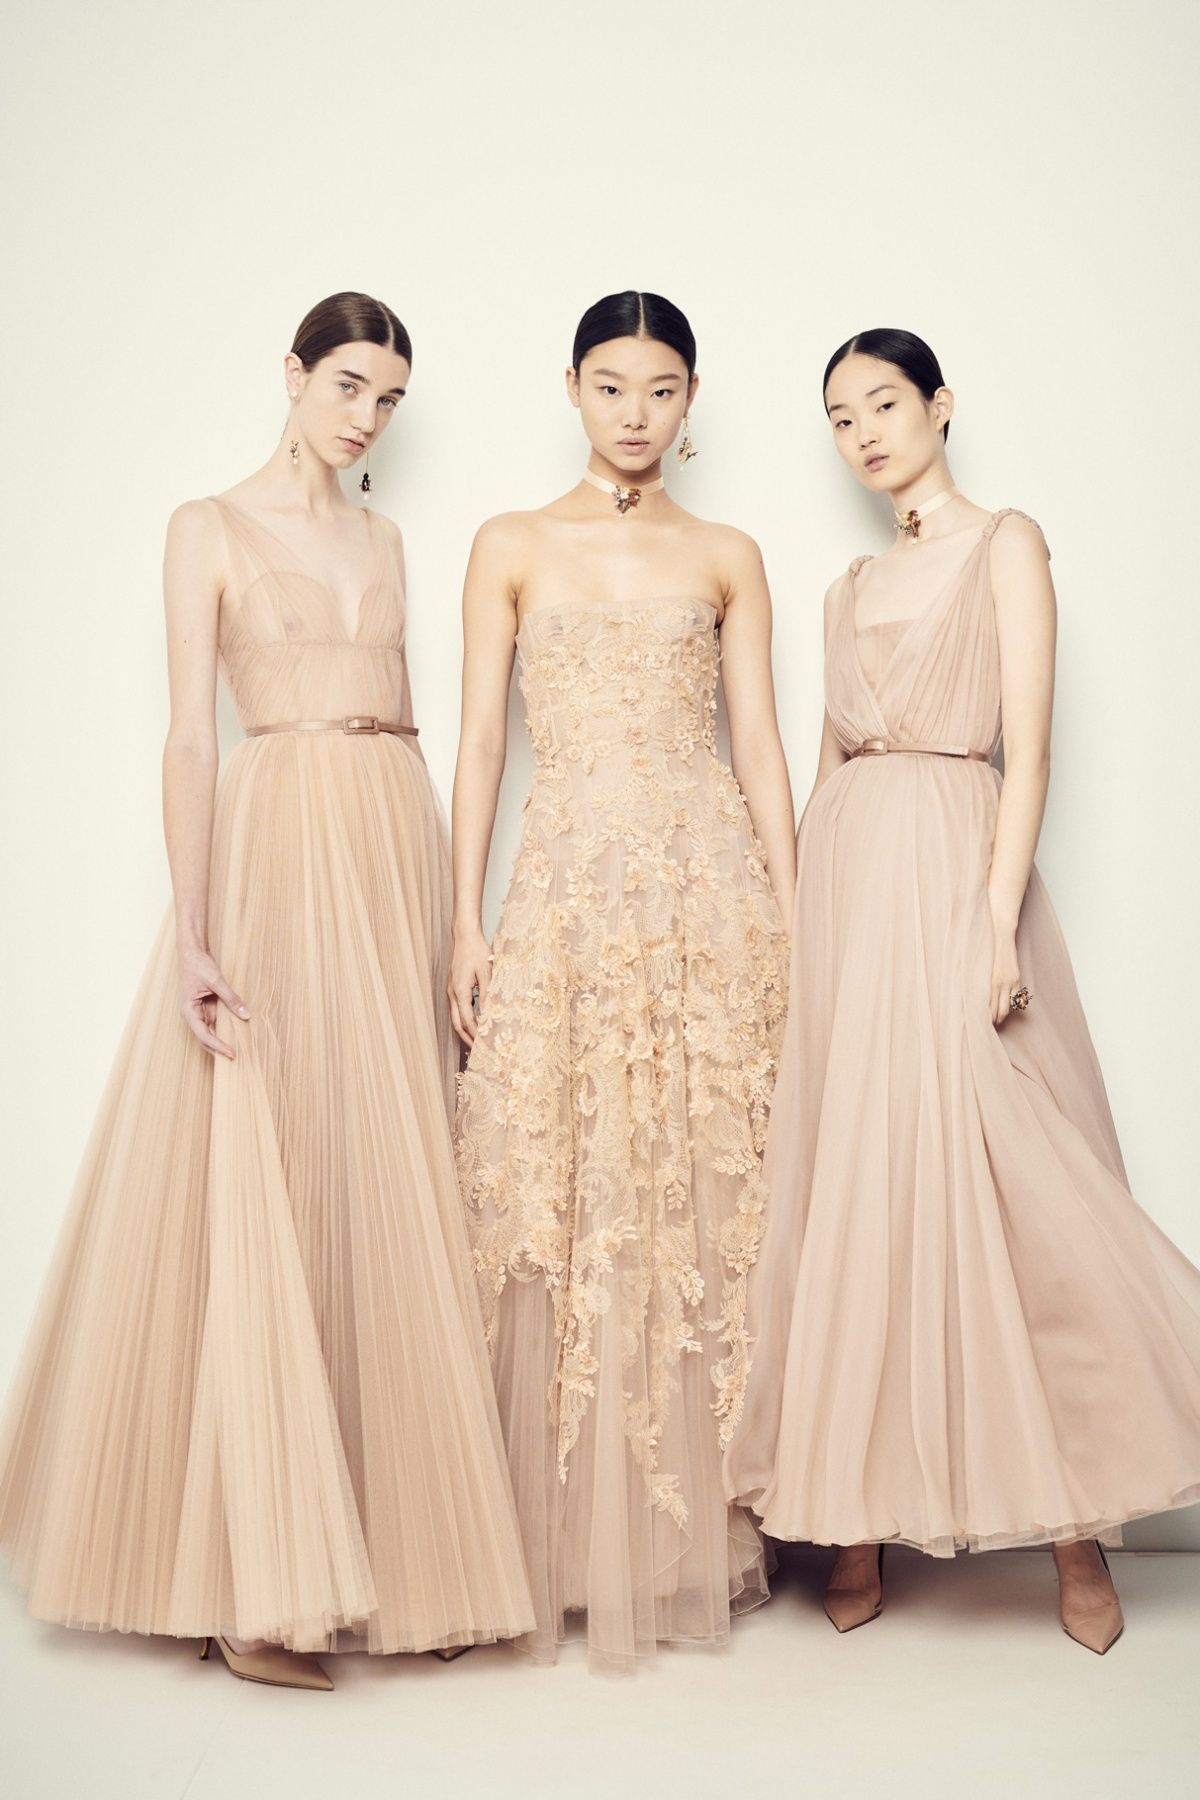 f3c6be48c6 Variations of Nude | Dress | Dior gown, Dior haute couture, Fashion